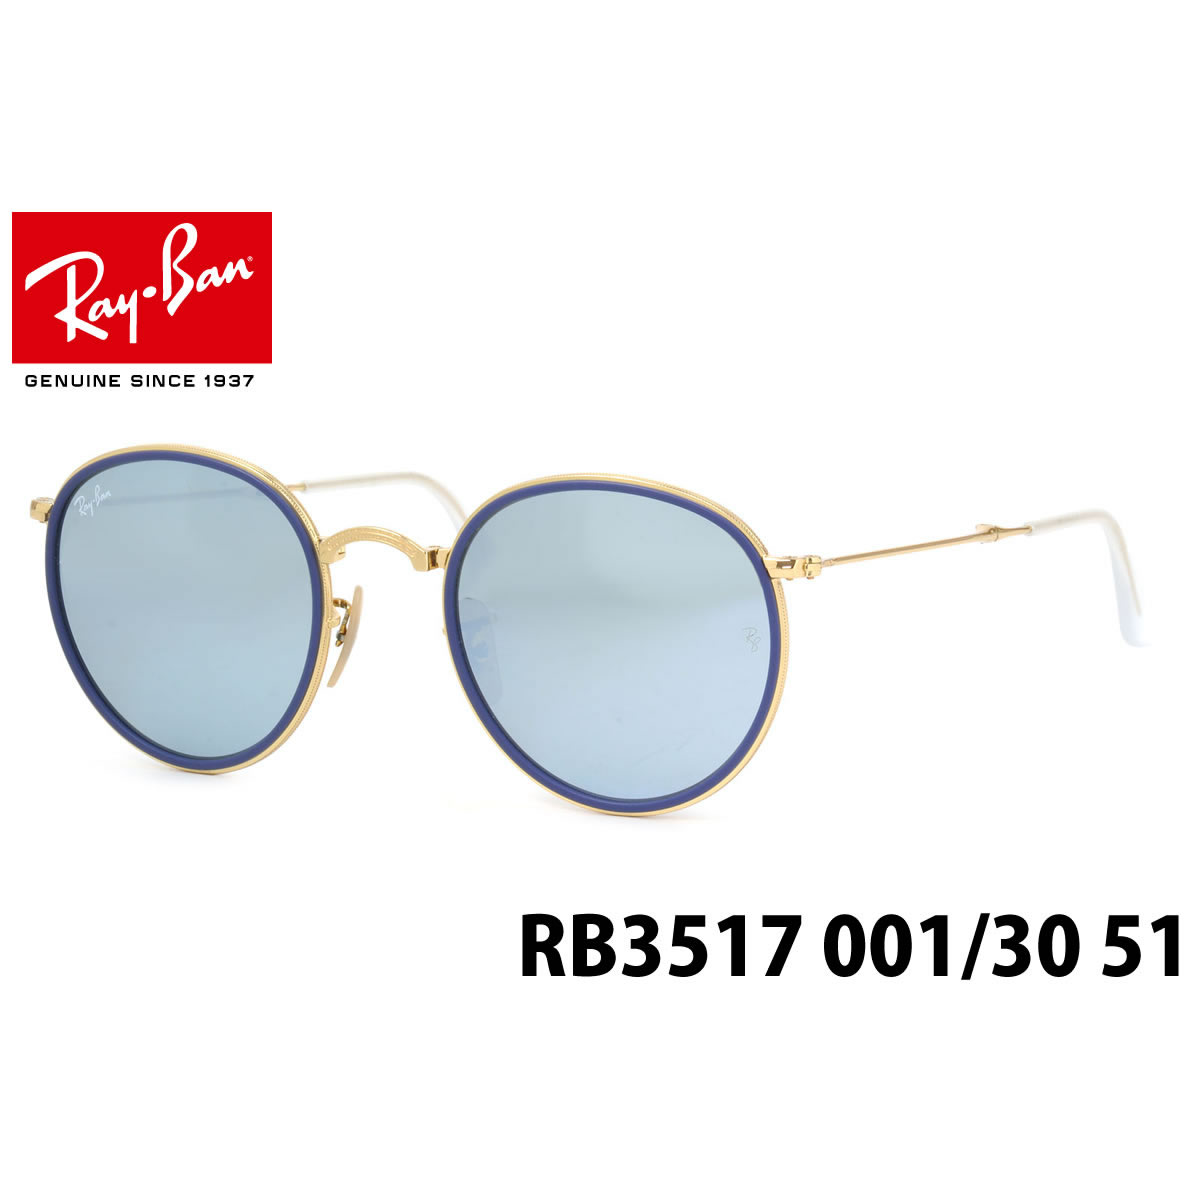 21e3905deccf2 Ray-Ban Sunglasses RB3517 001 30 51size ROUND METAL FOLDING CLASSIC GENUINE  NEW rayban ray ban